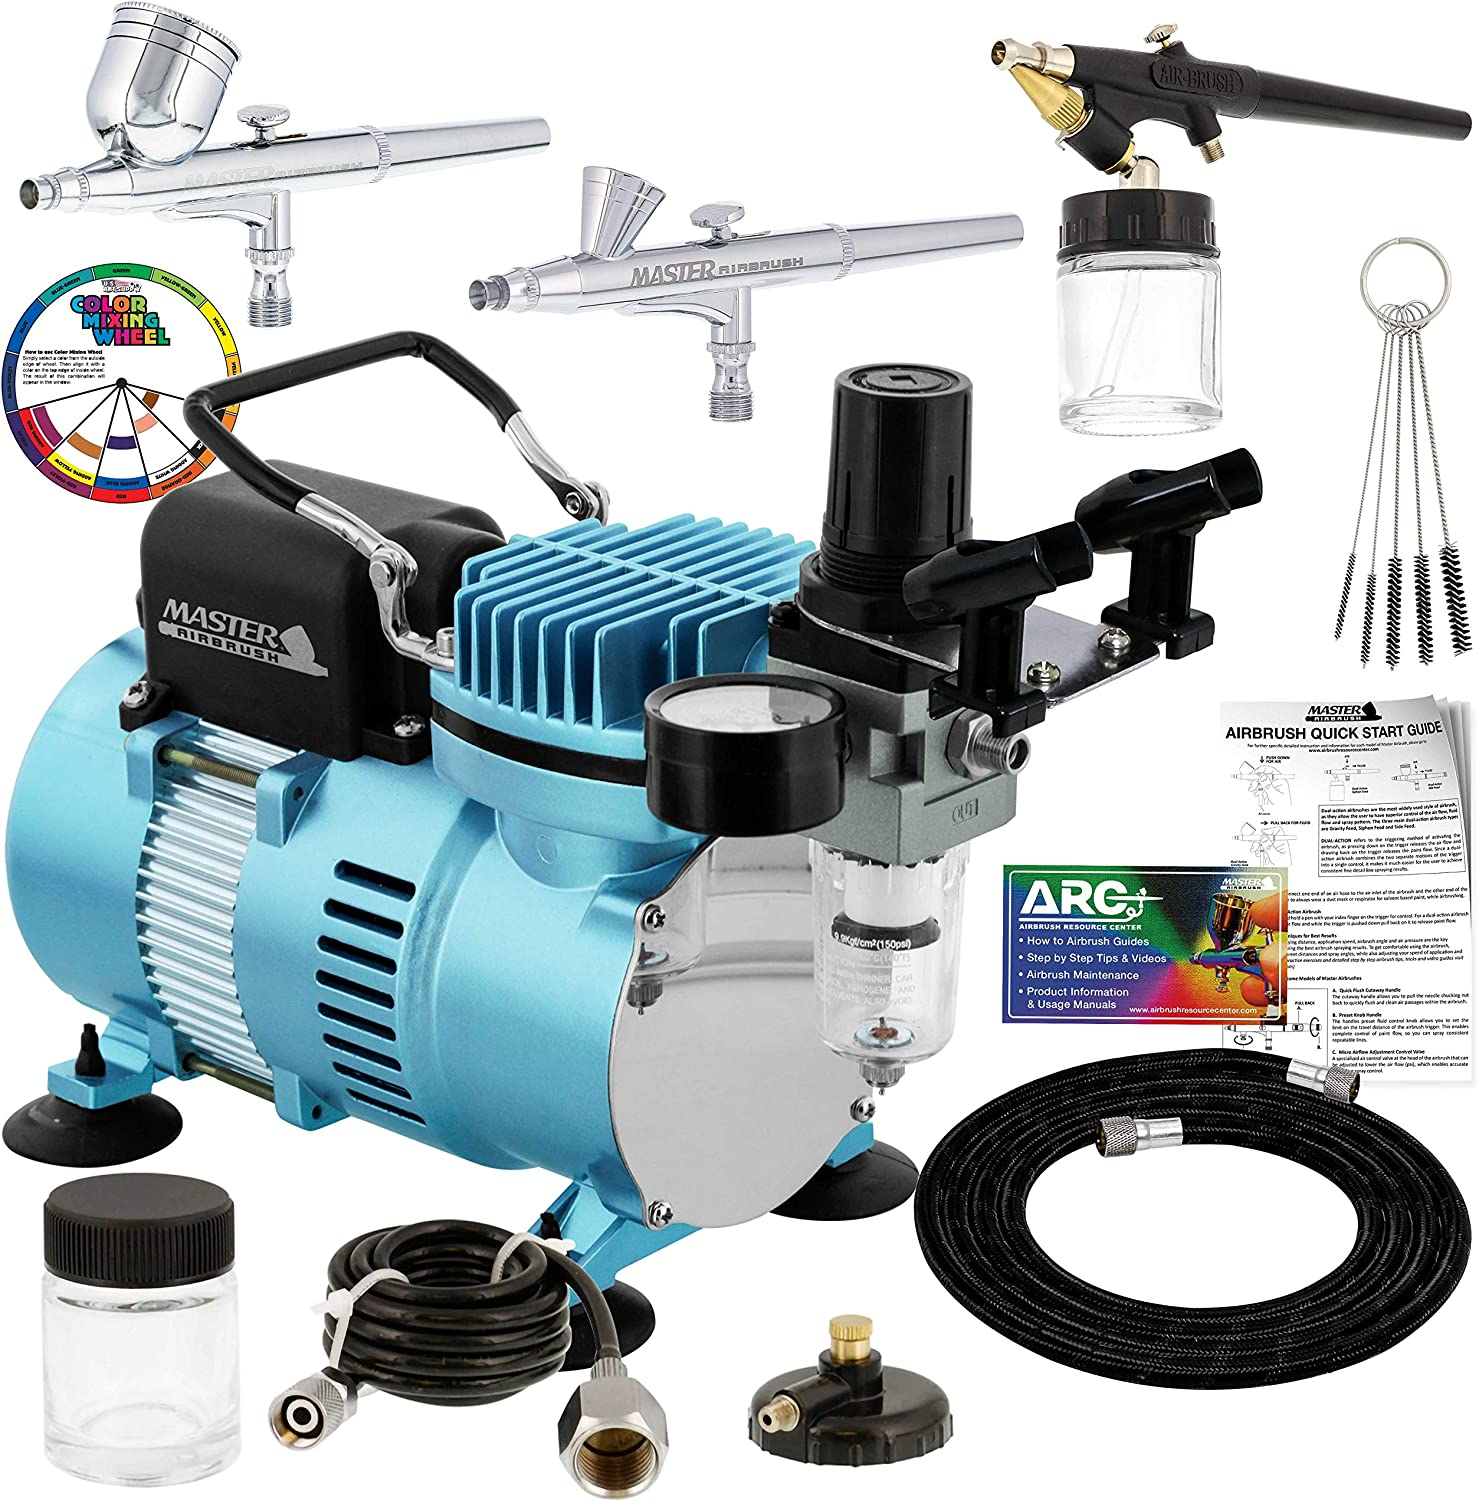 Master Airbrush Cool Runner II Dual Fan Air Compressor Professional Airbrushing System Kit with 3 Airbrushes, Gravity and Siphon Feed - Holder, Color Mixing Wheel, Cleaning Brush Set, How-to Guide: Arts, Crafts & Sewing